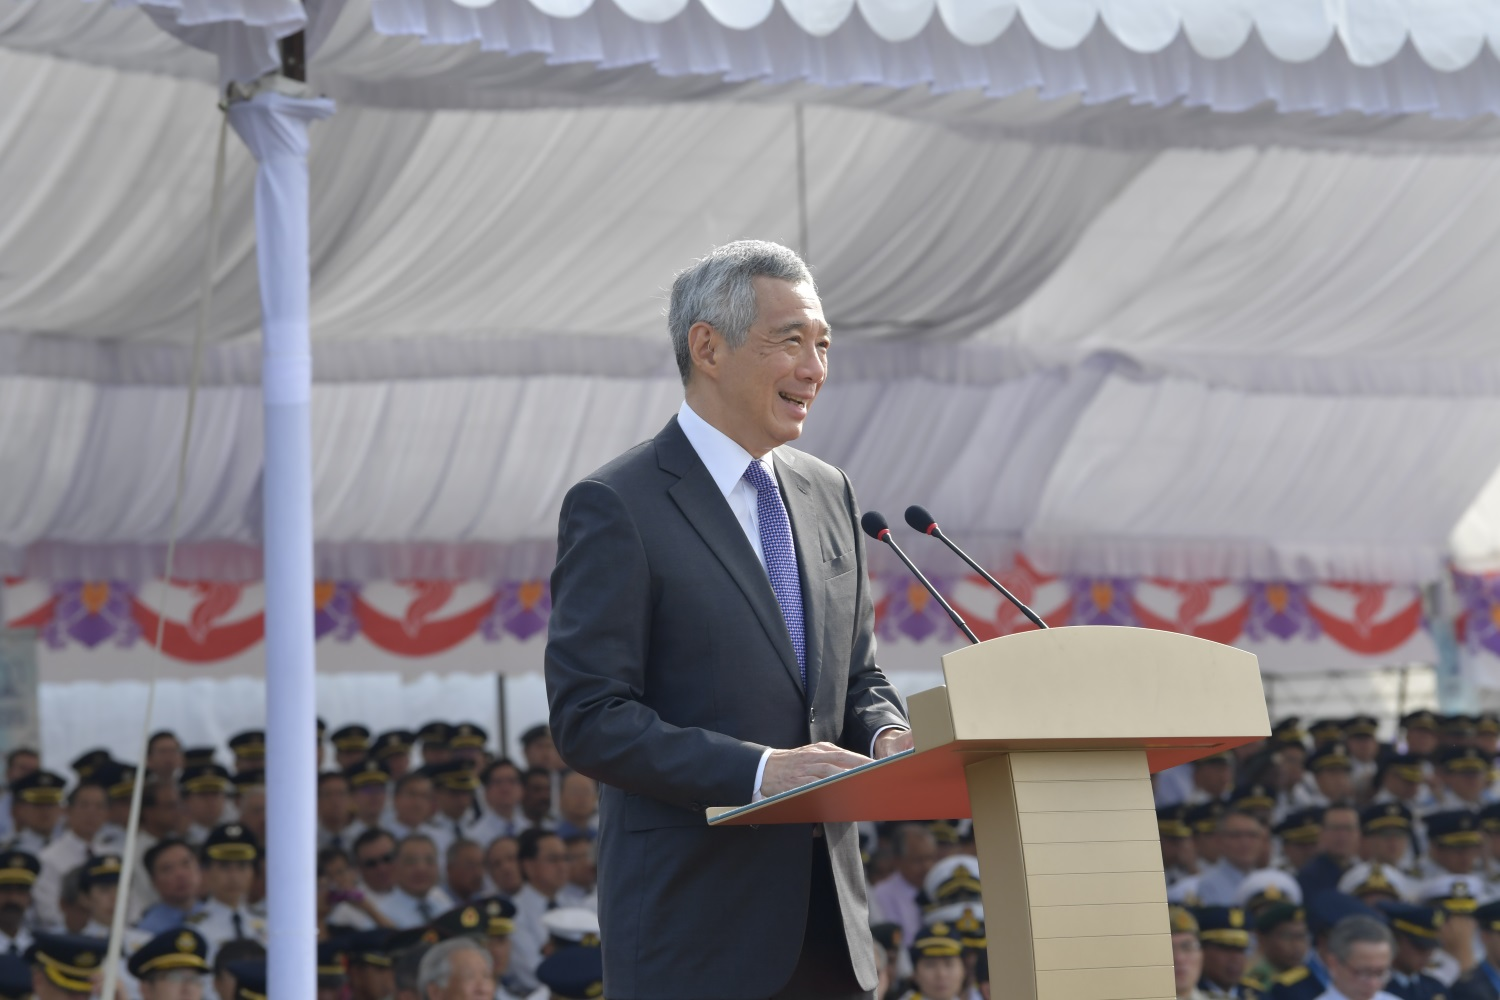 RSAF must continue to attract the right people: PM Lee